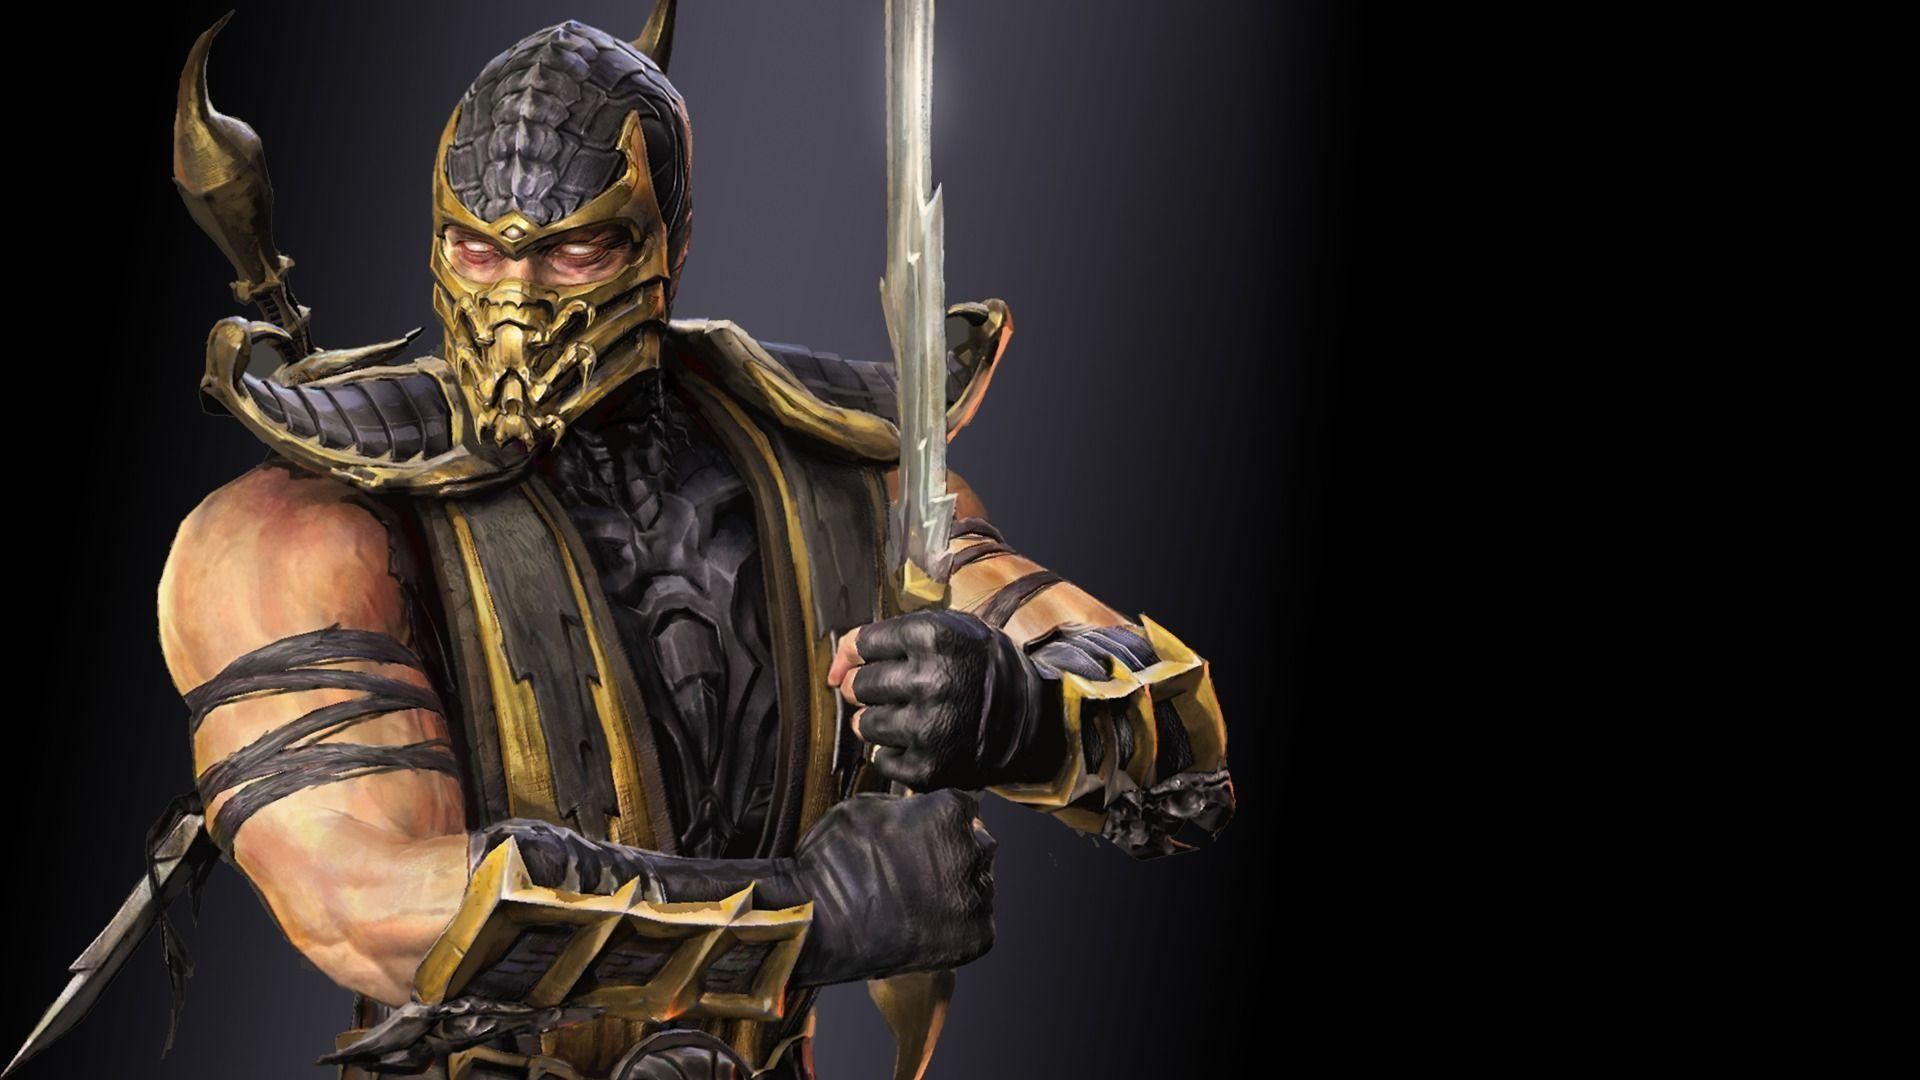 Mortal Kombat Scorpion Wallpaper 23 HD 1920x1080